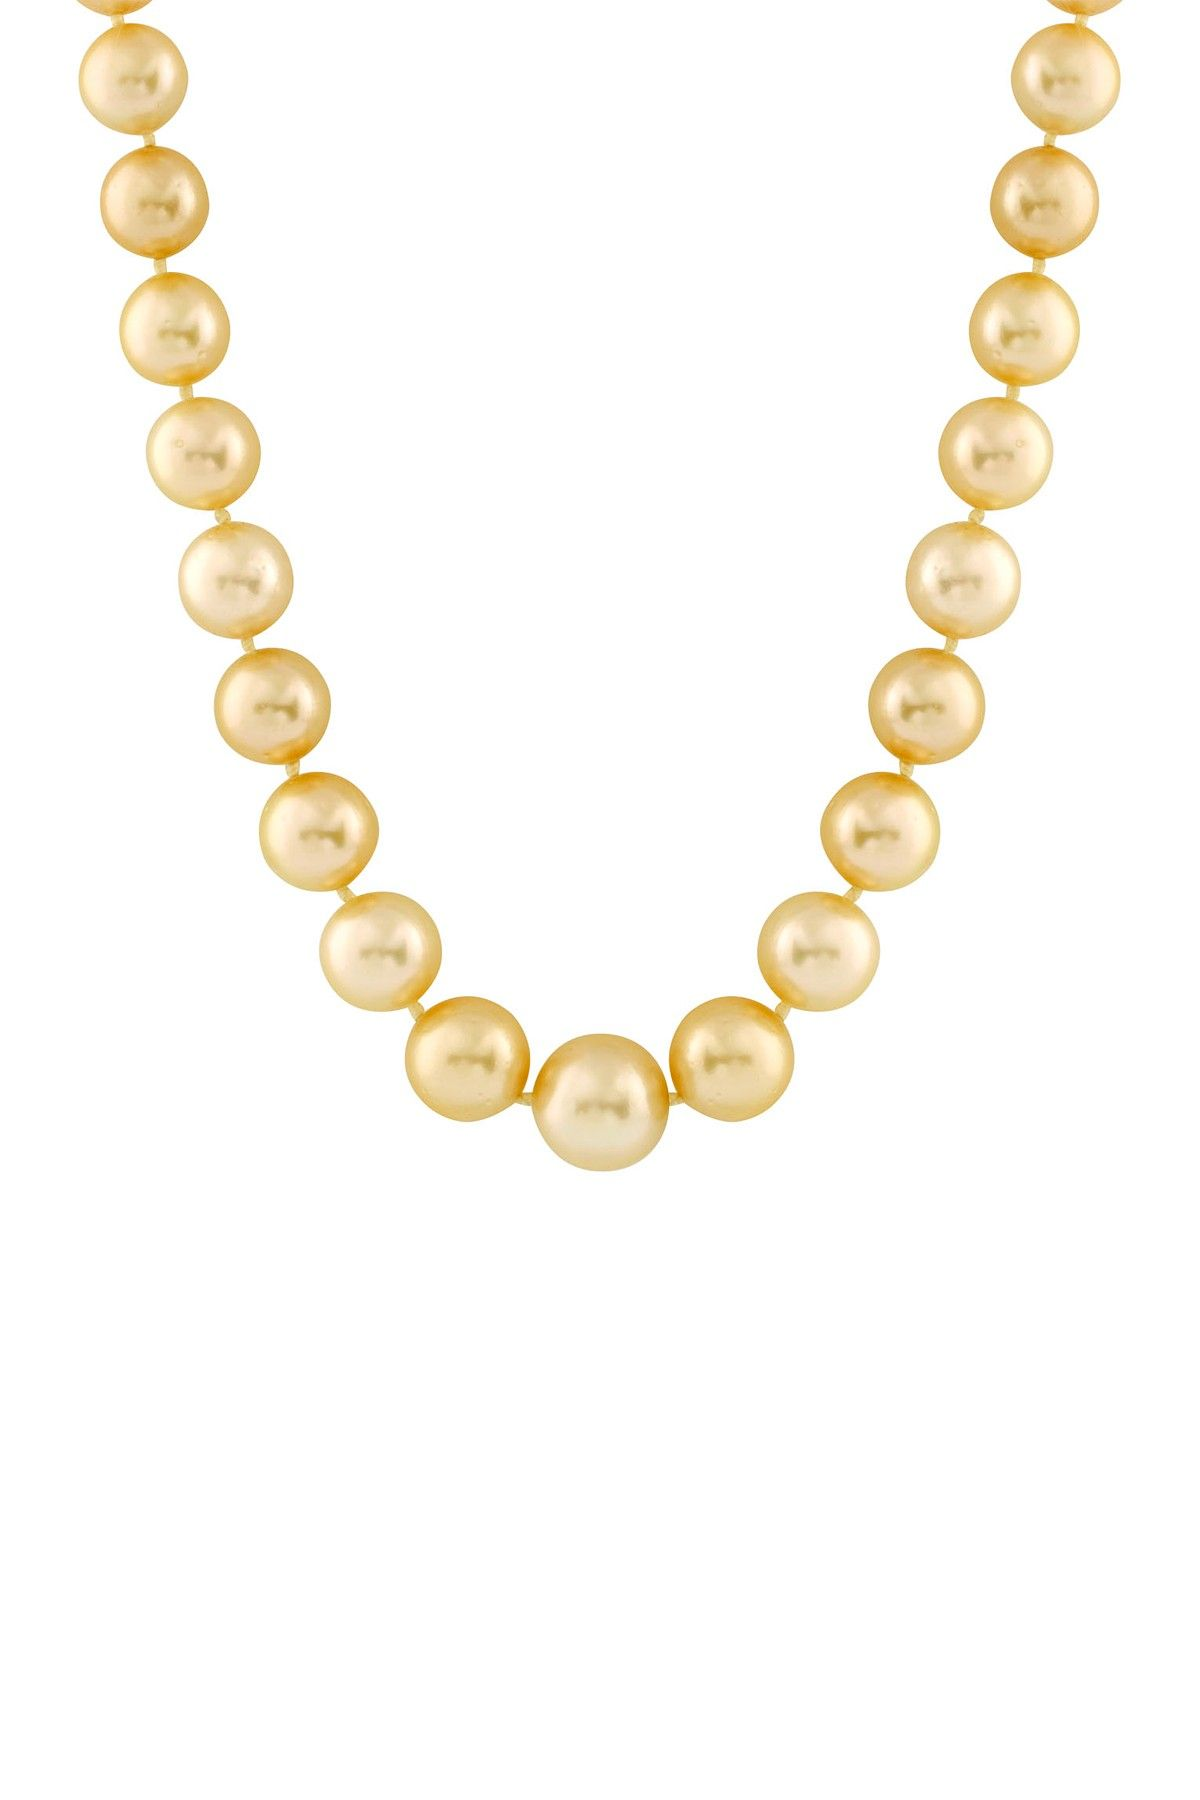 south japanese lariat golden sea pearl necklacepearls closeup with strand pearls keshi the product